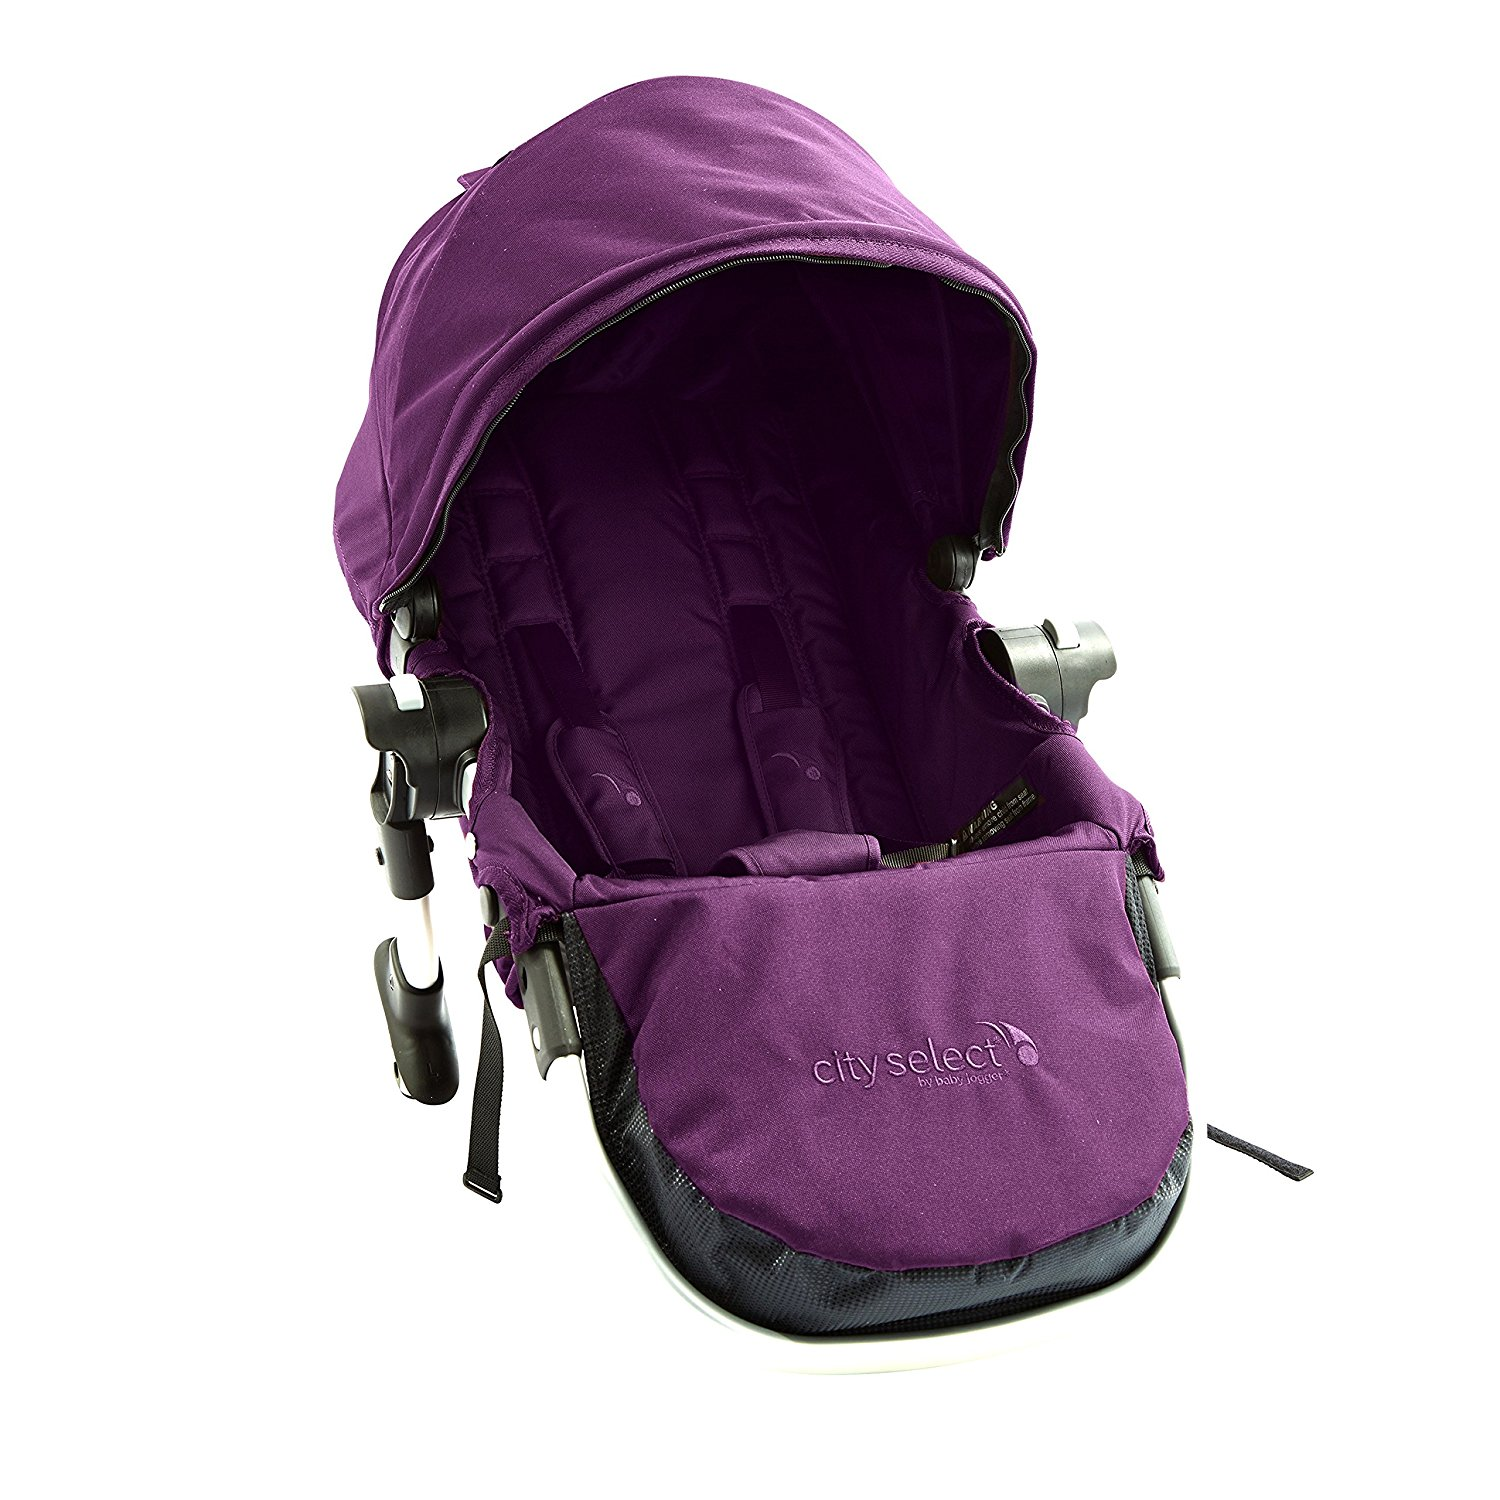 Baby Jogger City Select Second Seat Kit - Amethyst